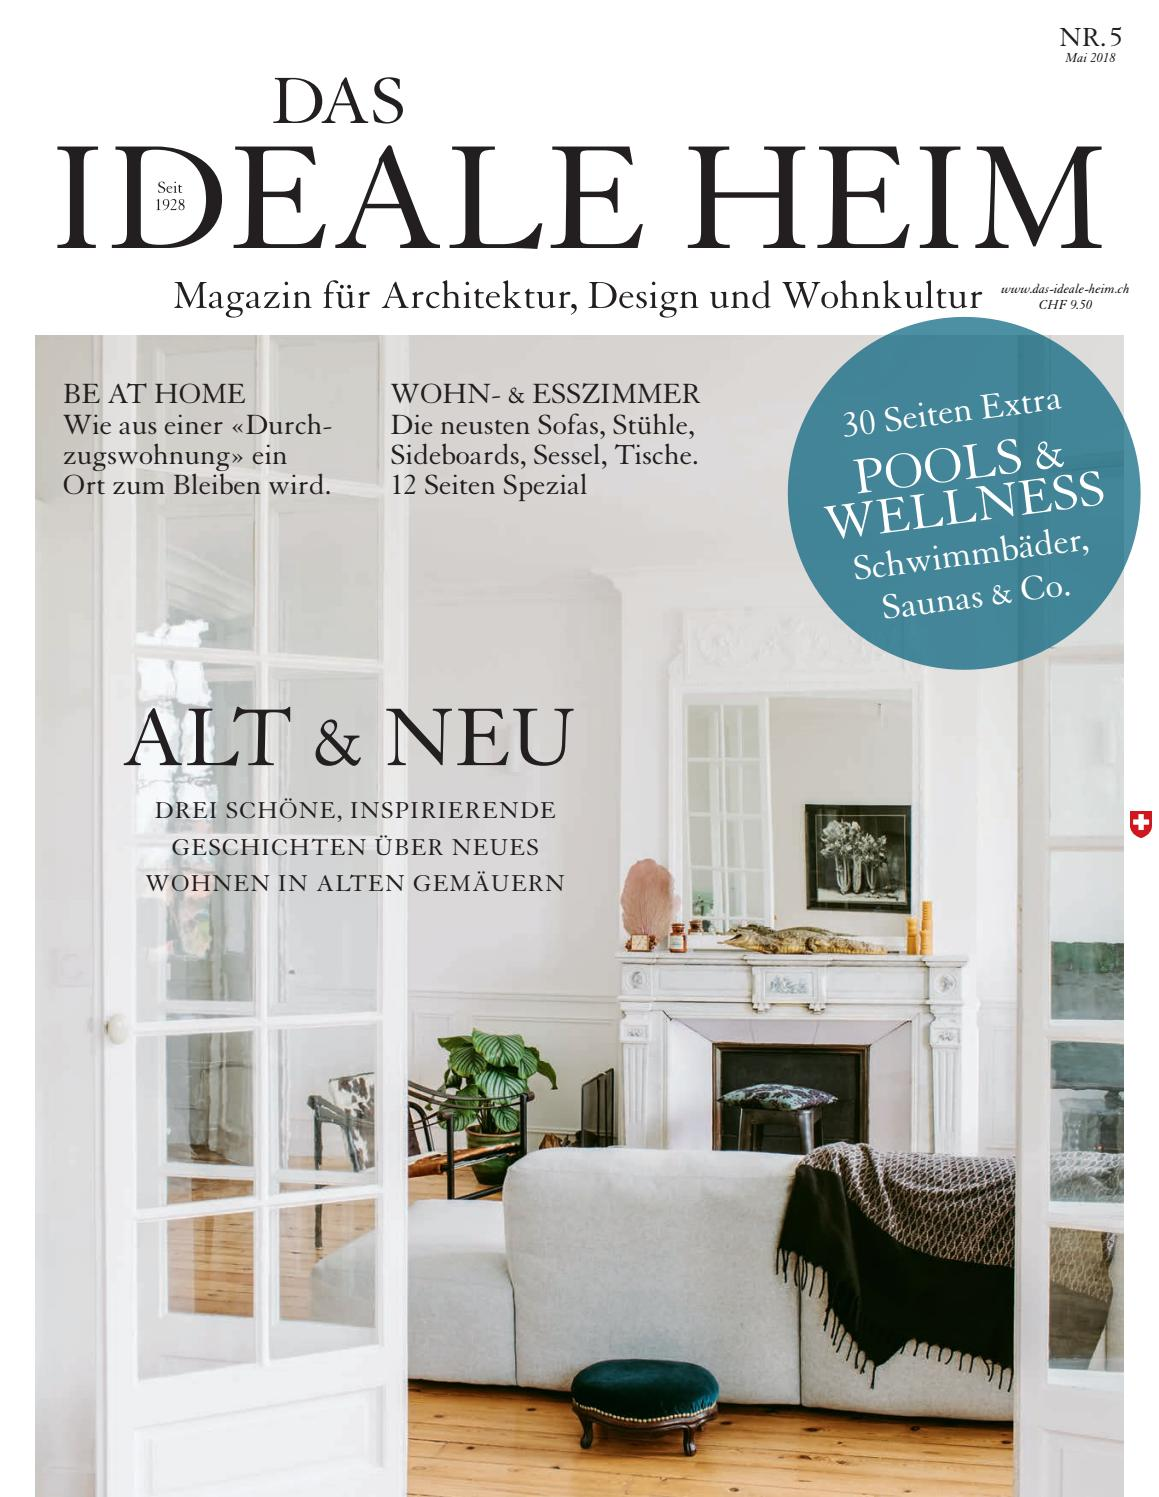 Wie Fliest Man Ein Modernes Bad Das Ideale Heim 05 2018 By Archithema Verlag Issuu